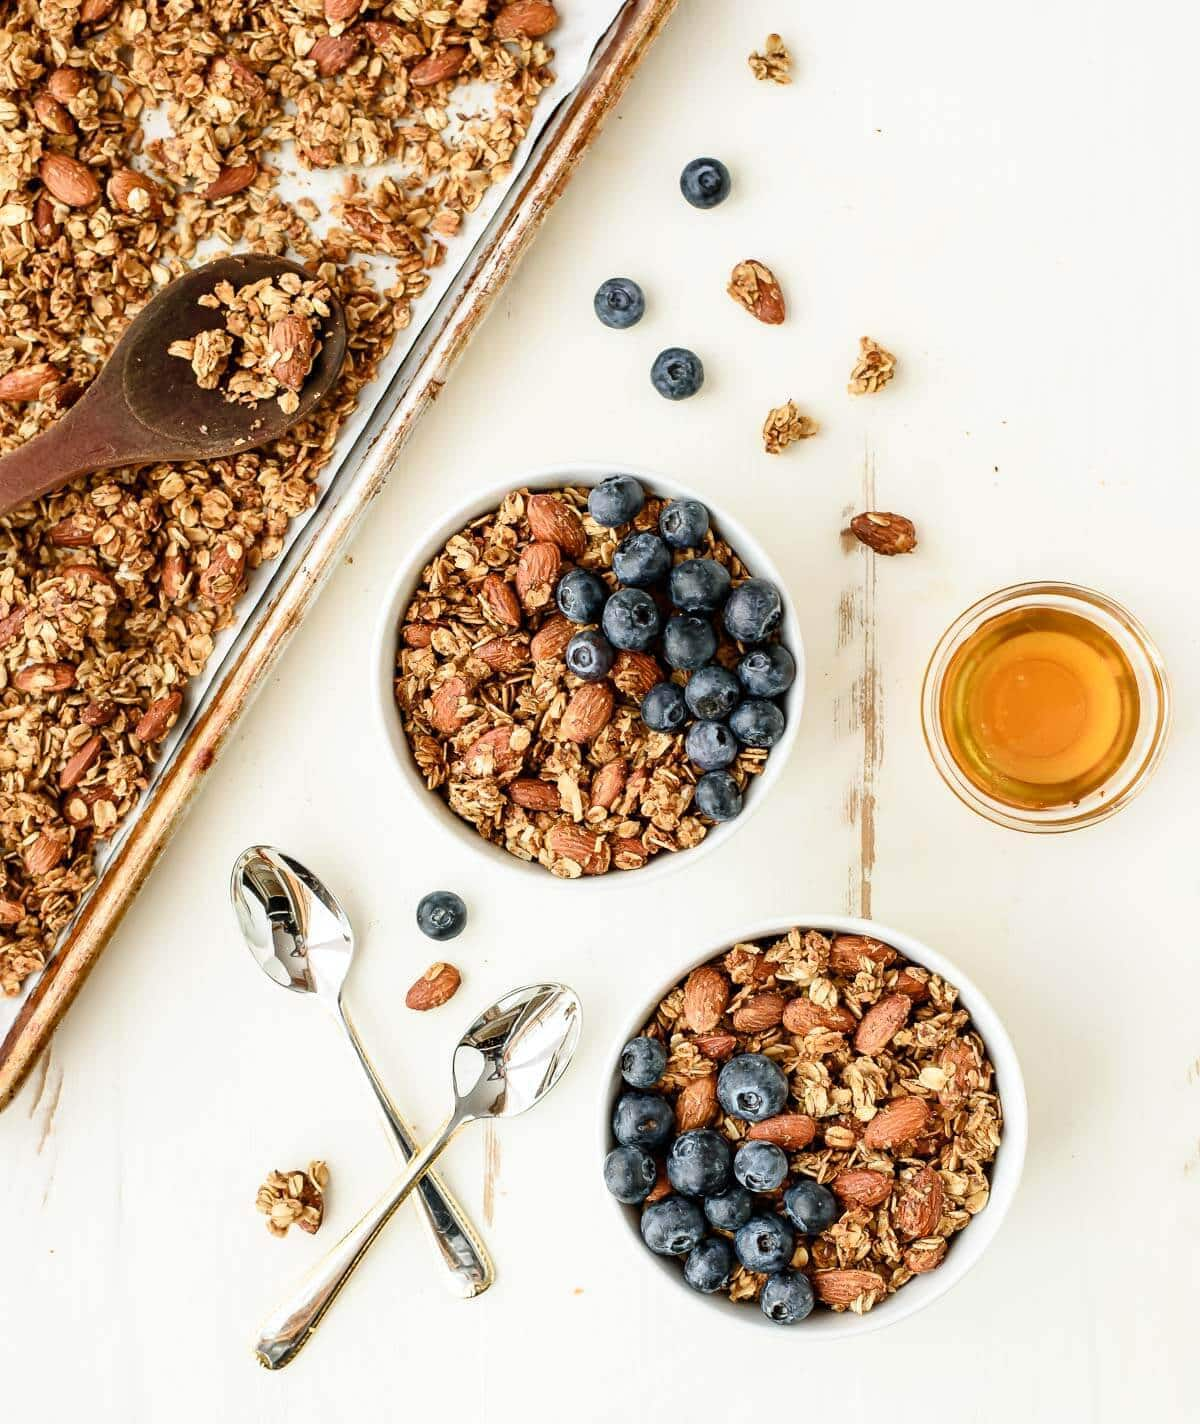 Two bowls of honey almond granola with blueberries